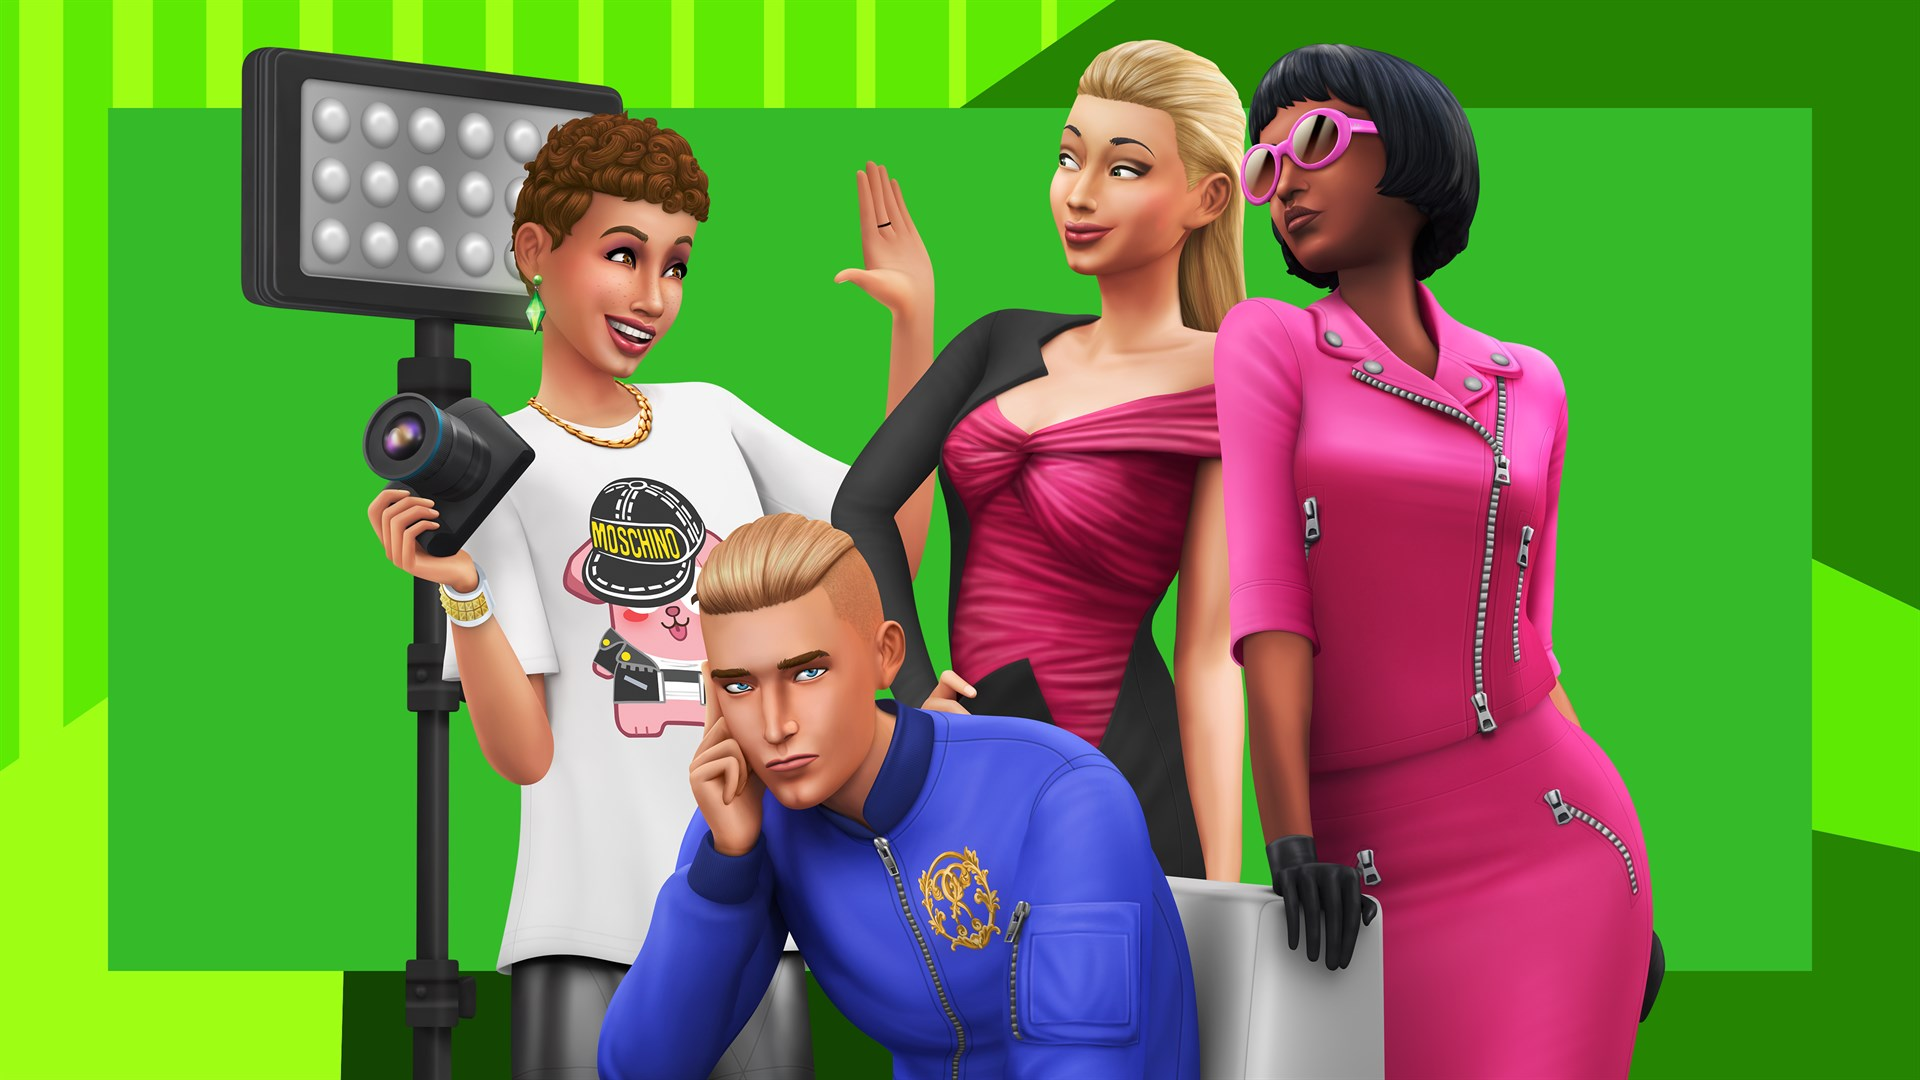 Create an impression with The Sims 4 Moschino DLC Pack on